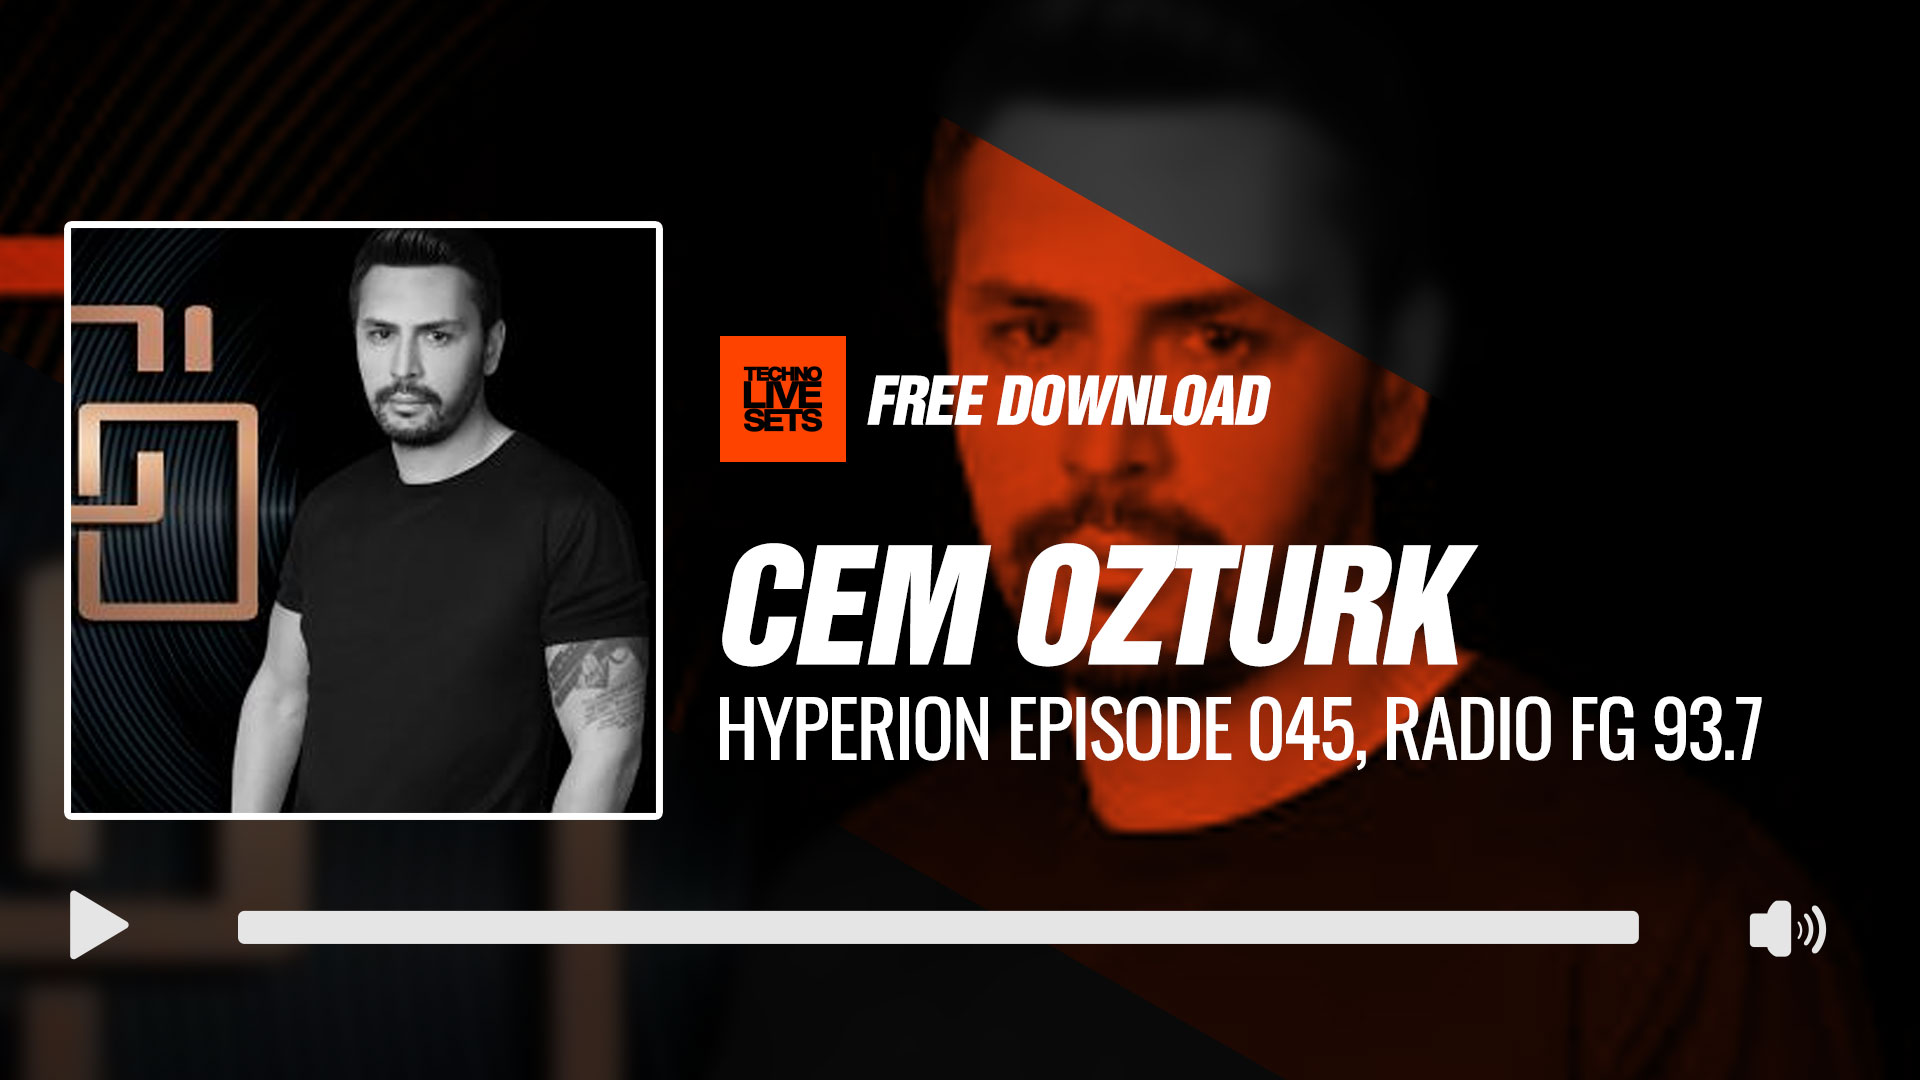 cem ozturk 2017 techno feast istanbul turkey hyperion episode 045 radio fg 93 7 live 02 08 2017. Black Bedroom Furniture Sets. Home Design Ideas